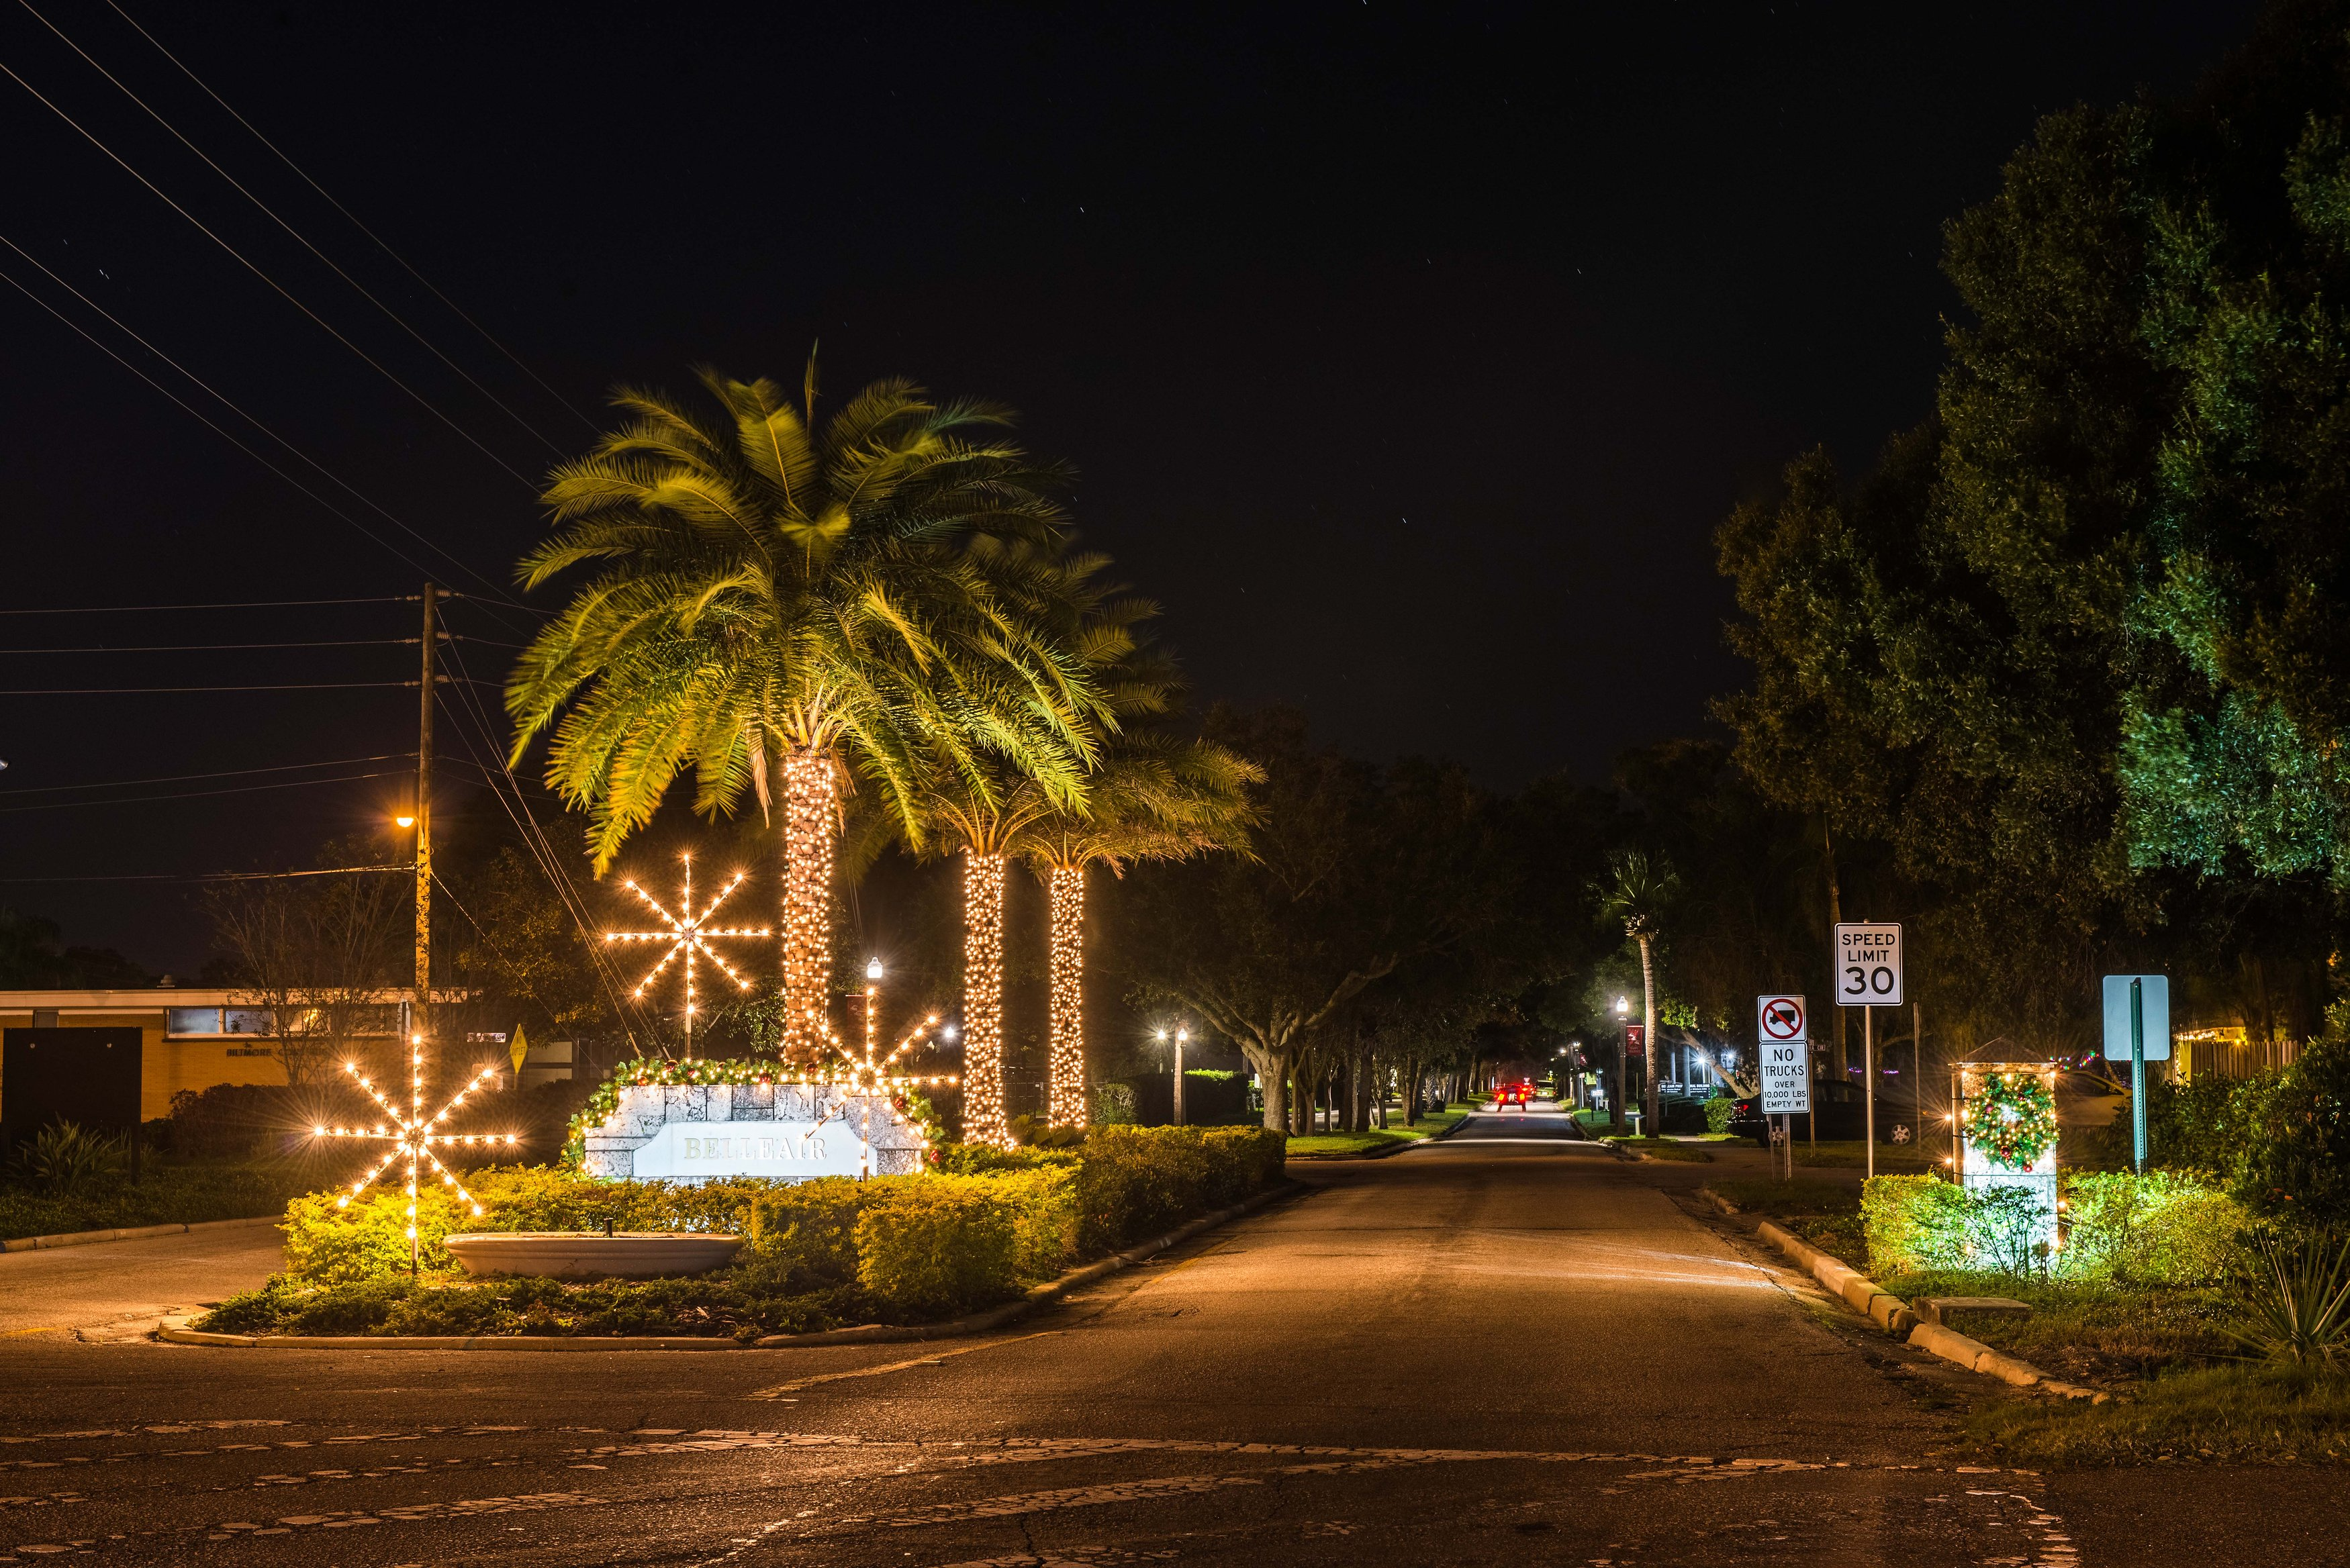 Holiday lighting on trees and in the median of Ponce de Leon Blvd next to the Belleair entrance sign